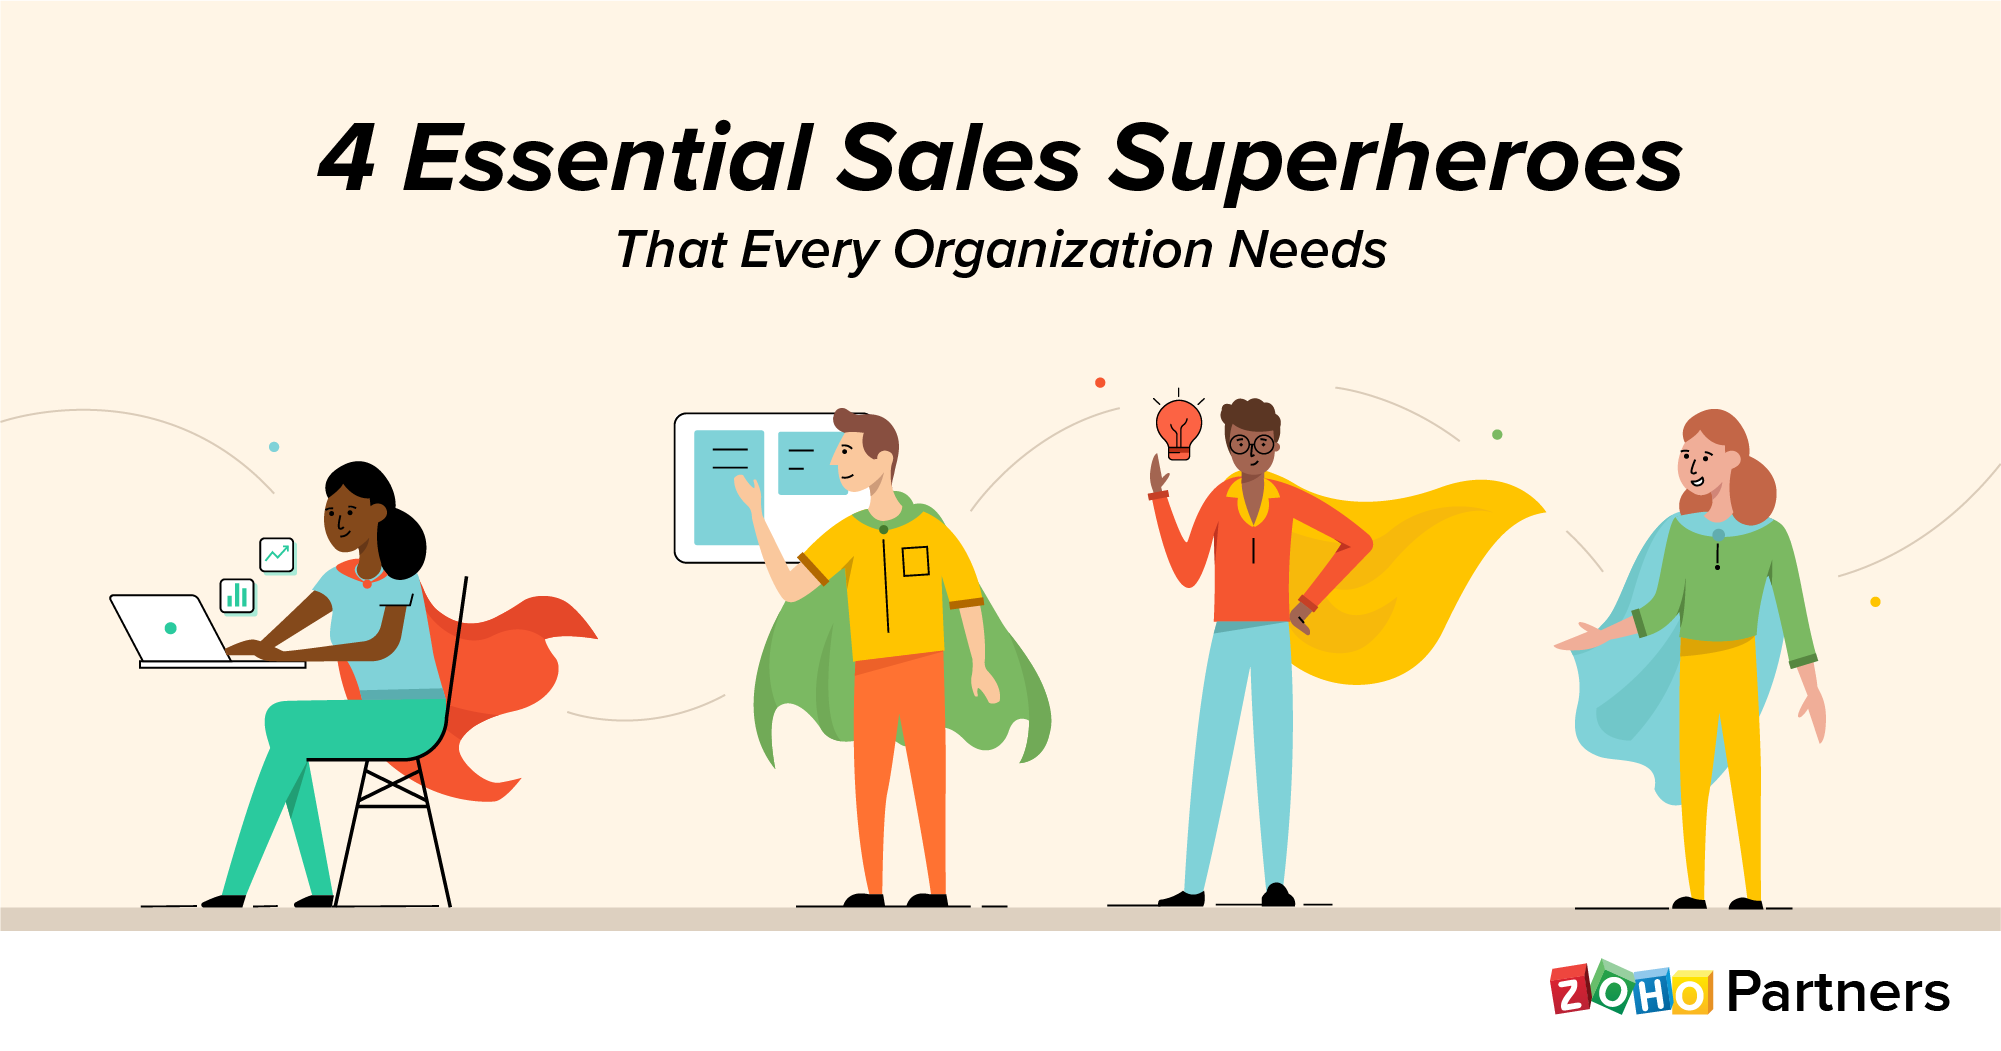 4 Essential sales superheroes that every organization needs